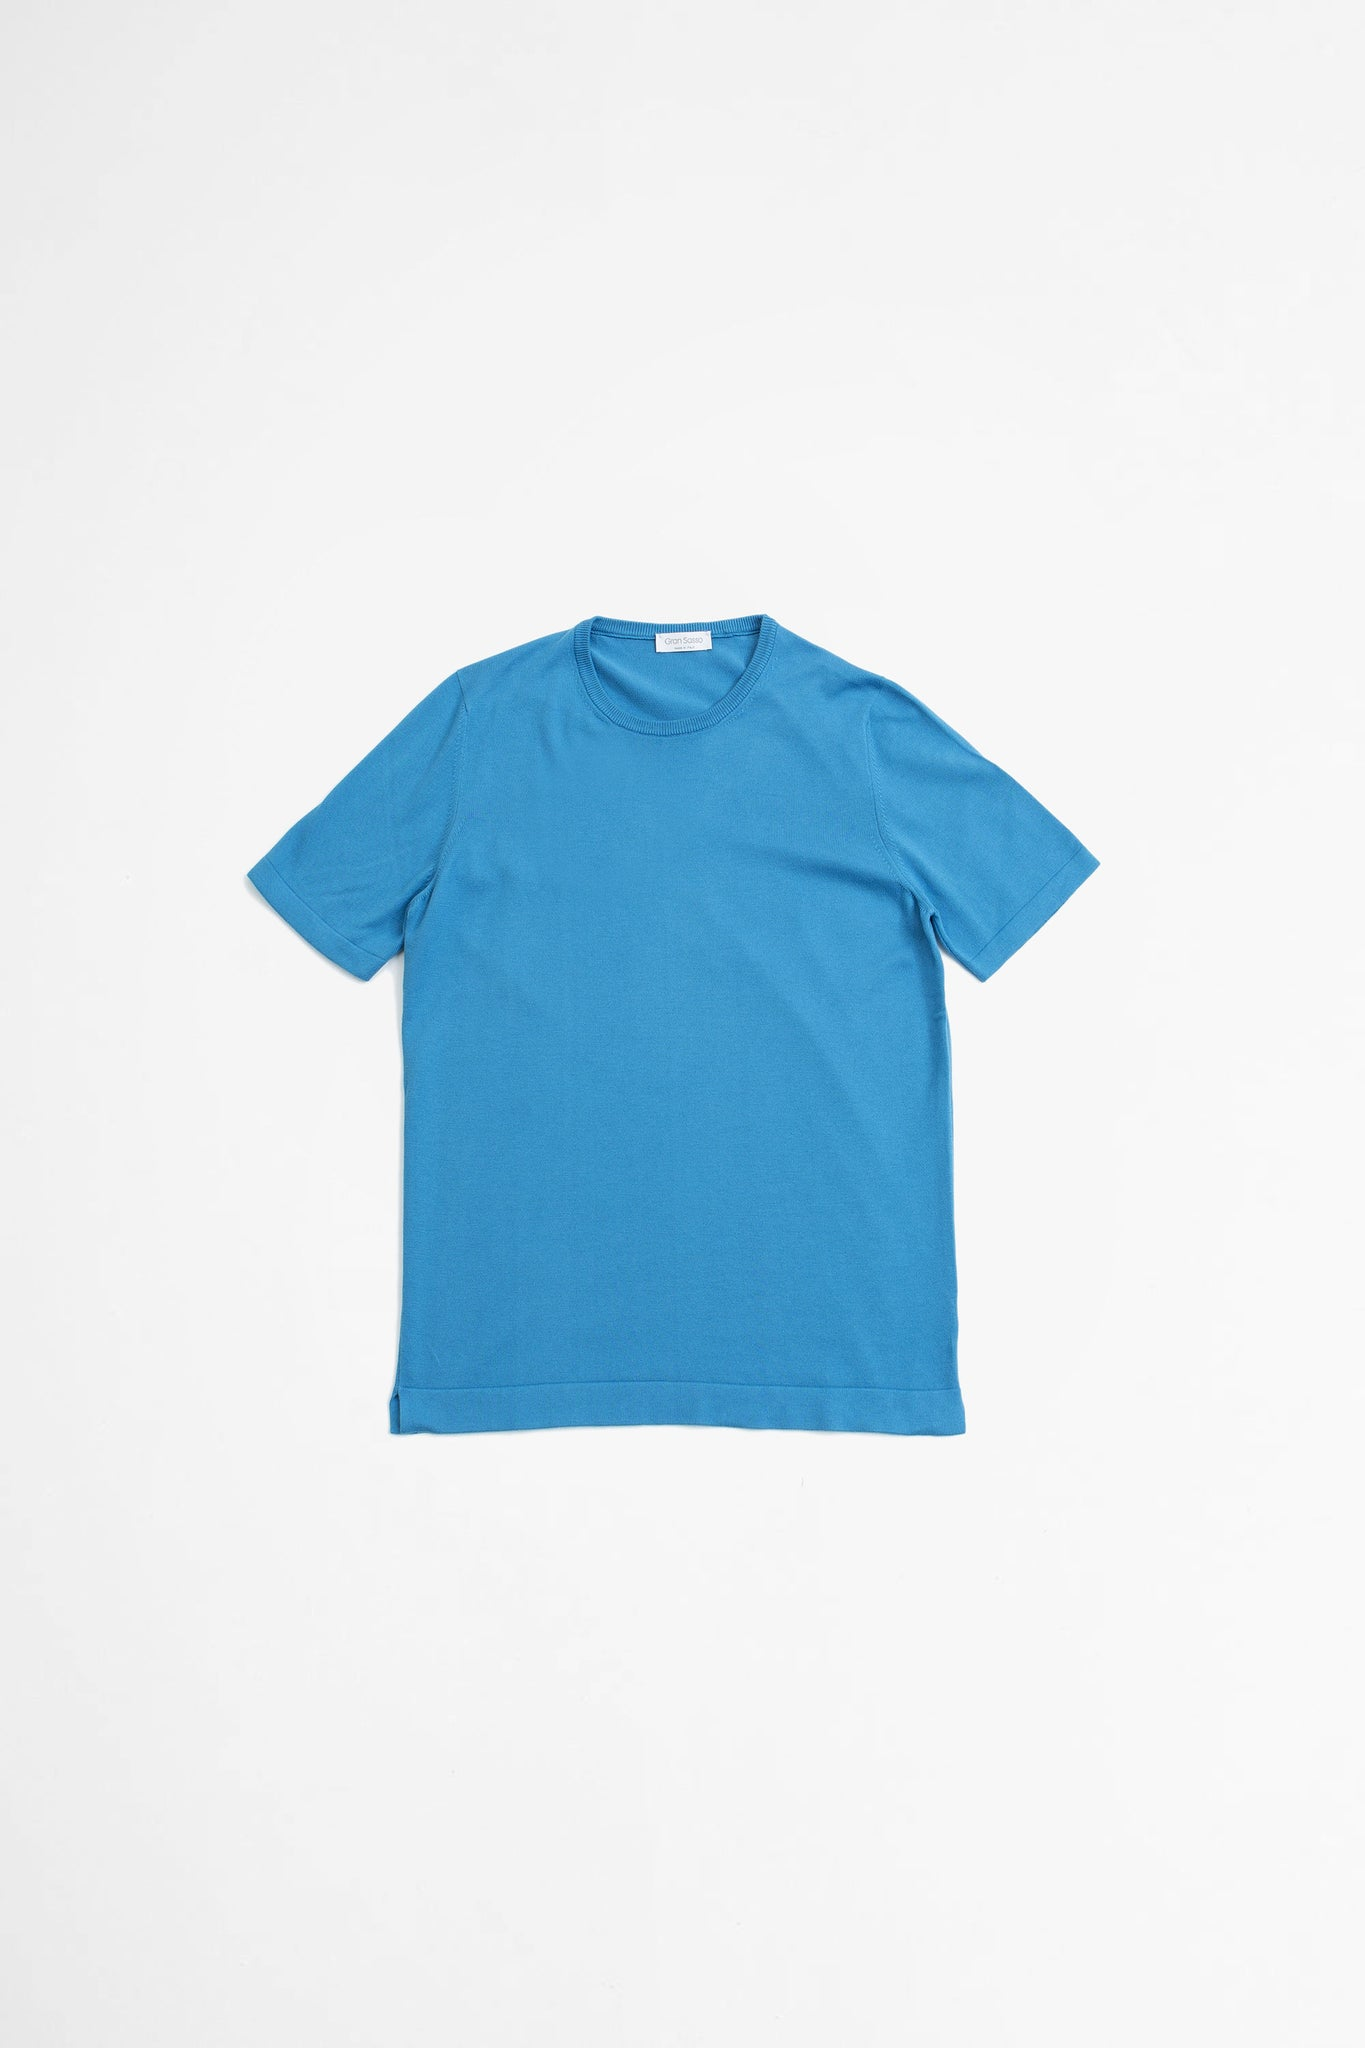 Paricollo short sleeve sky blue